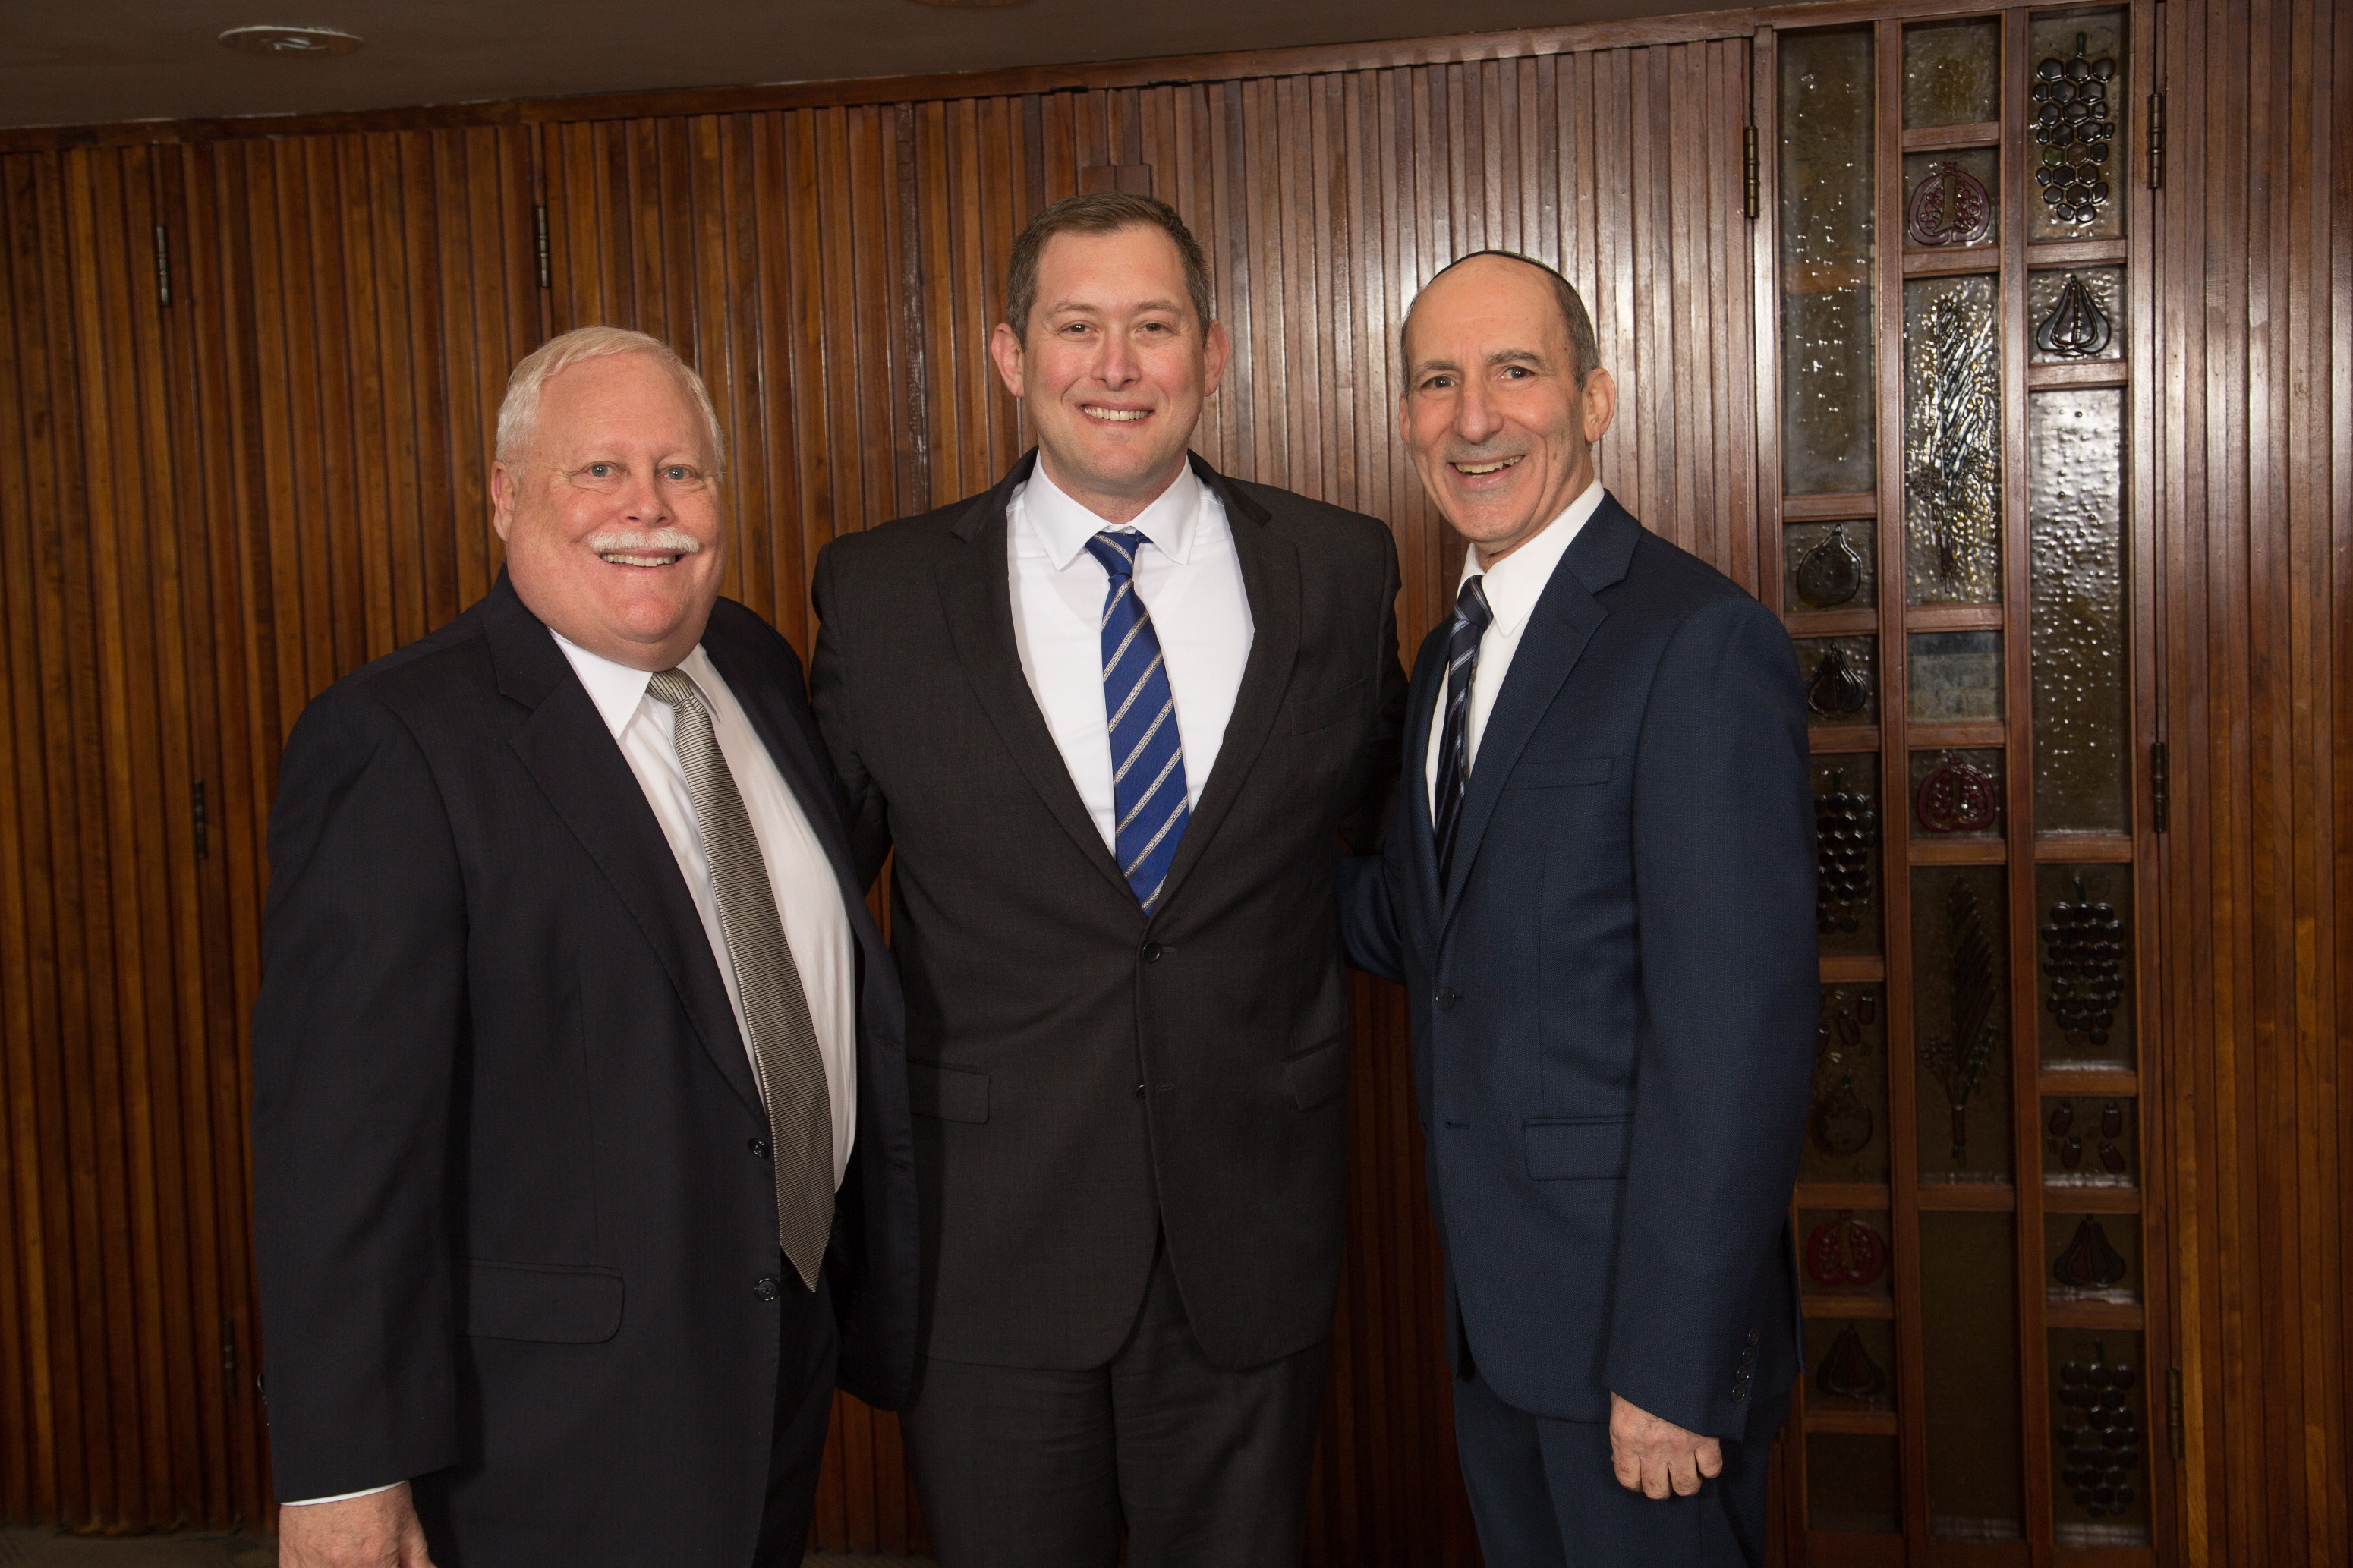 BJE Board President Mark Berns, Honoree Craig Rutenberg and BJE Executive Director Dr. Gil Graff